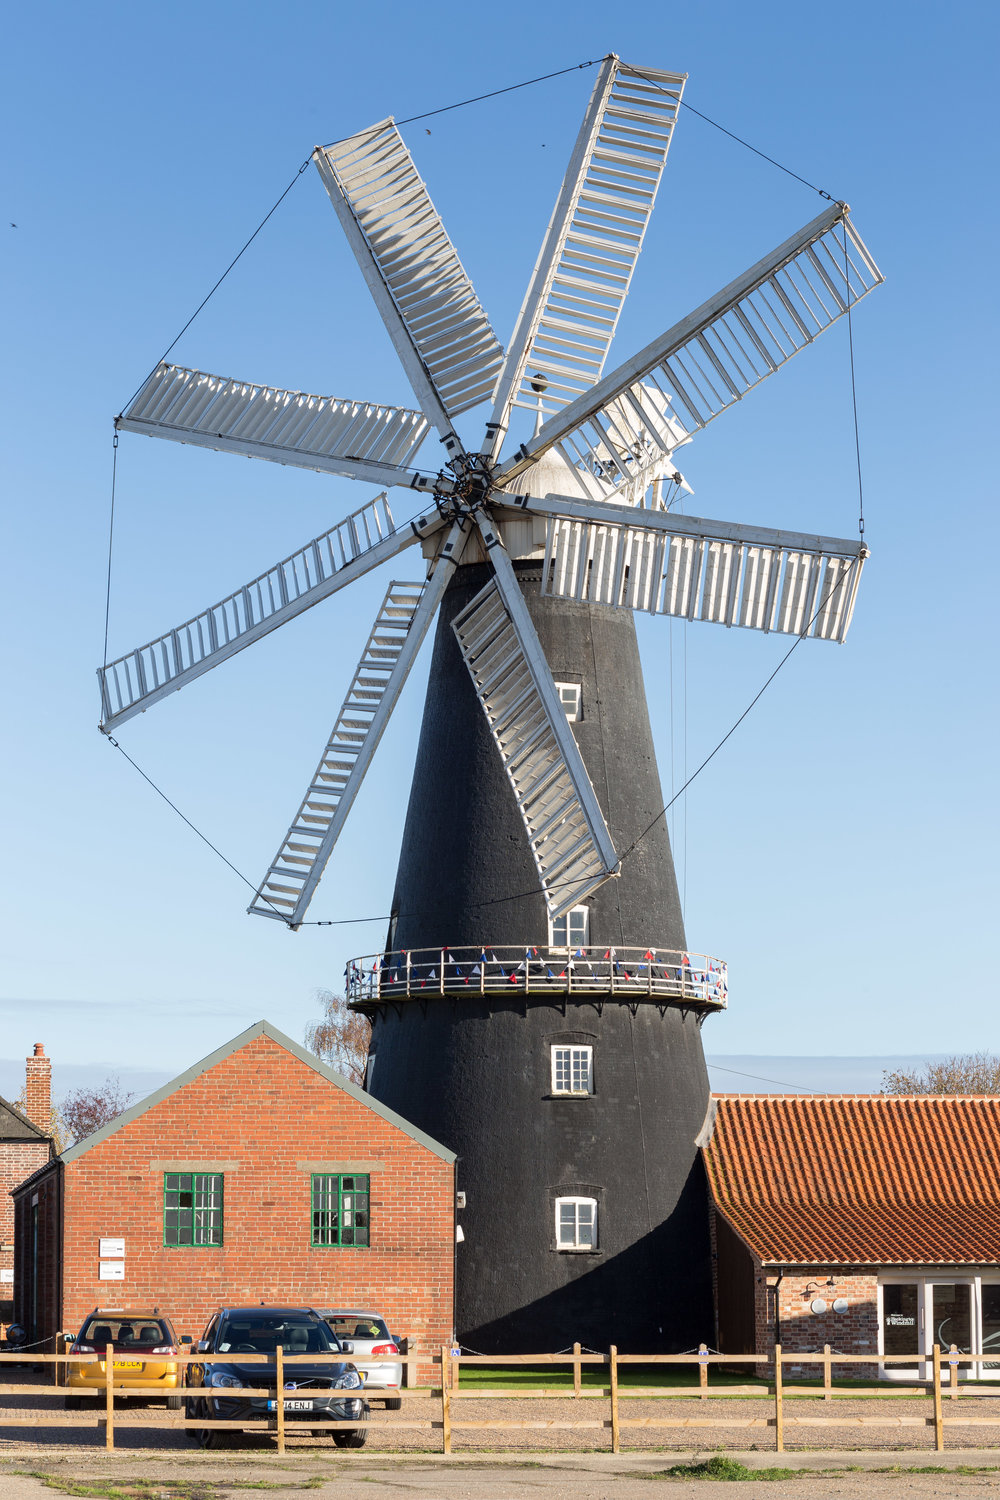 CGA_Heckington Windmill_IMG_8591.jpg